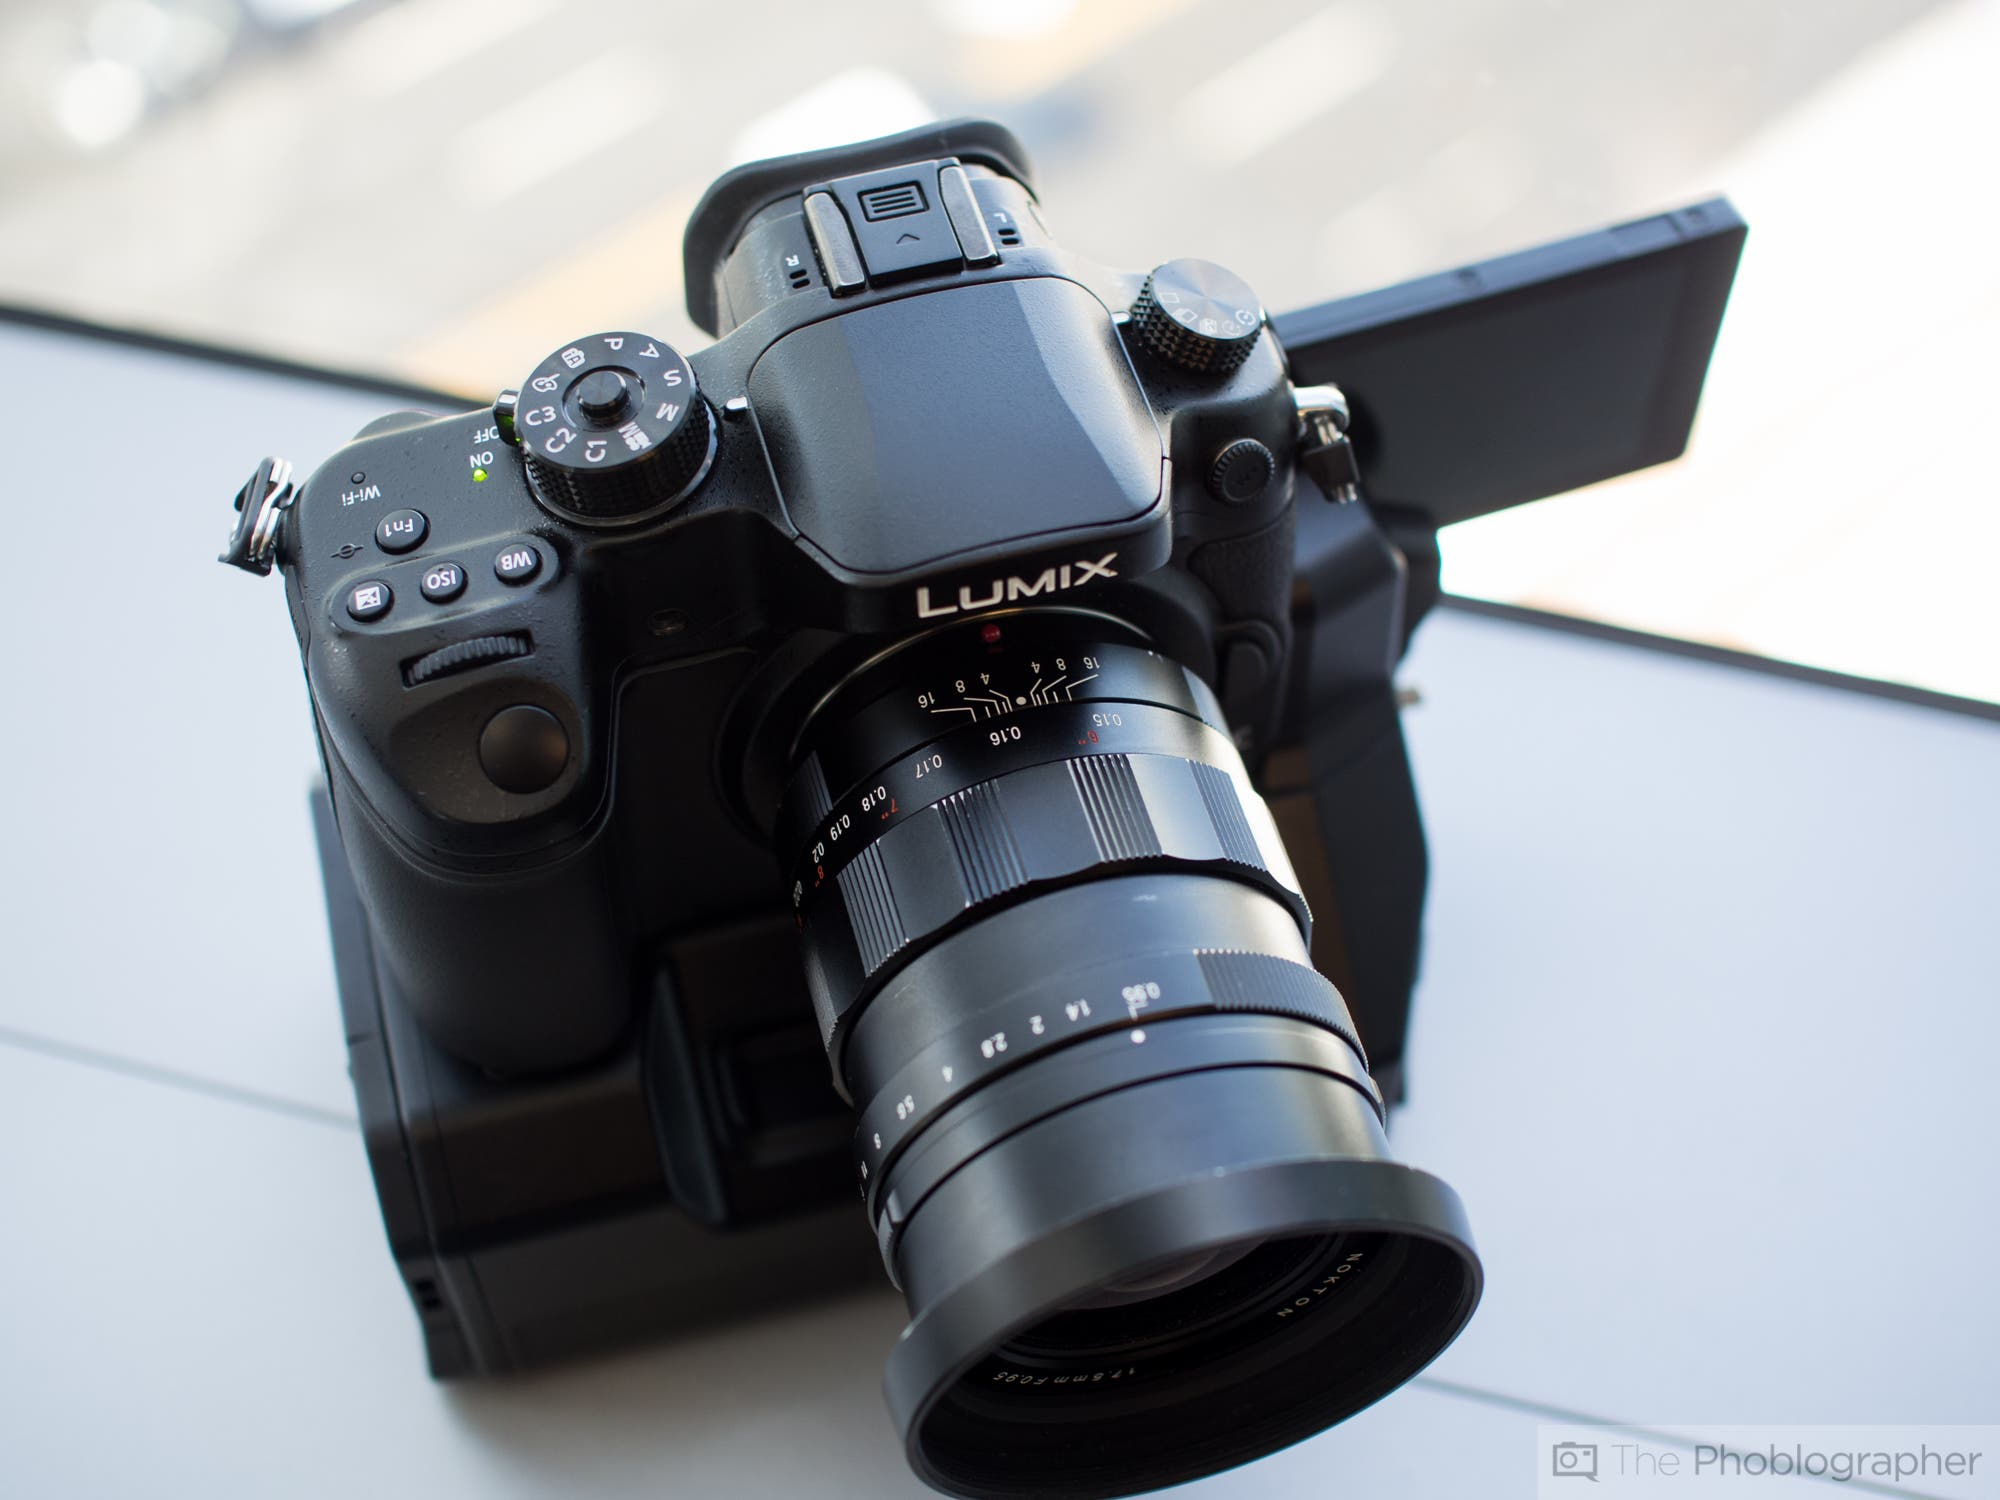 Adobe Camera Raw 8.5 RC Adds Panasonic GH4 and Olympus EM10 support